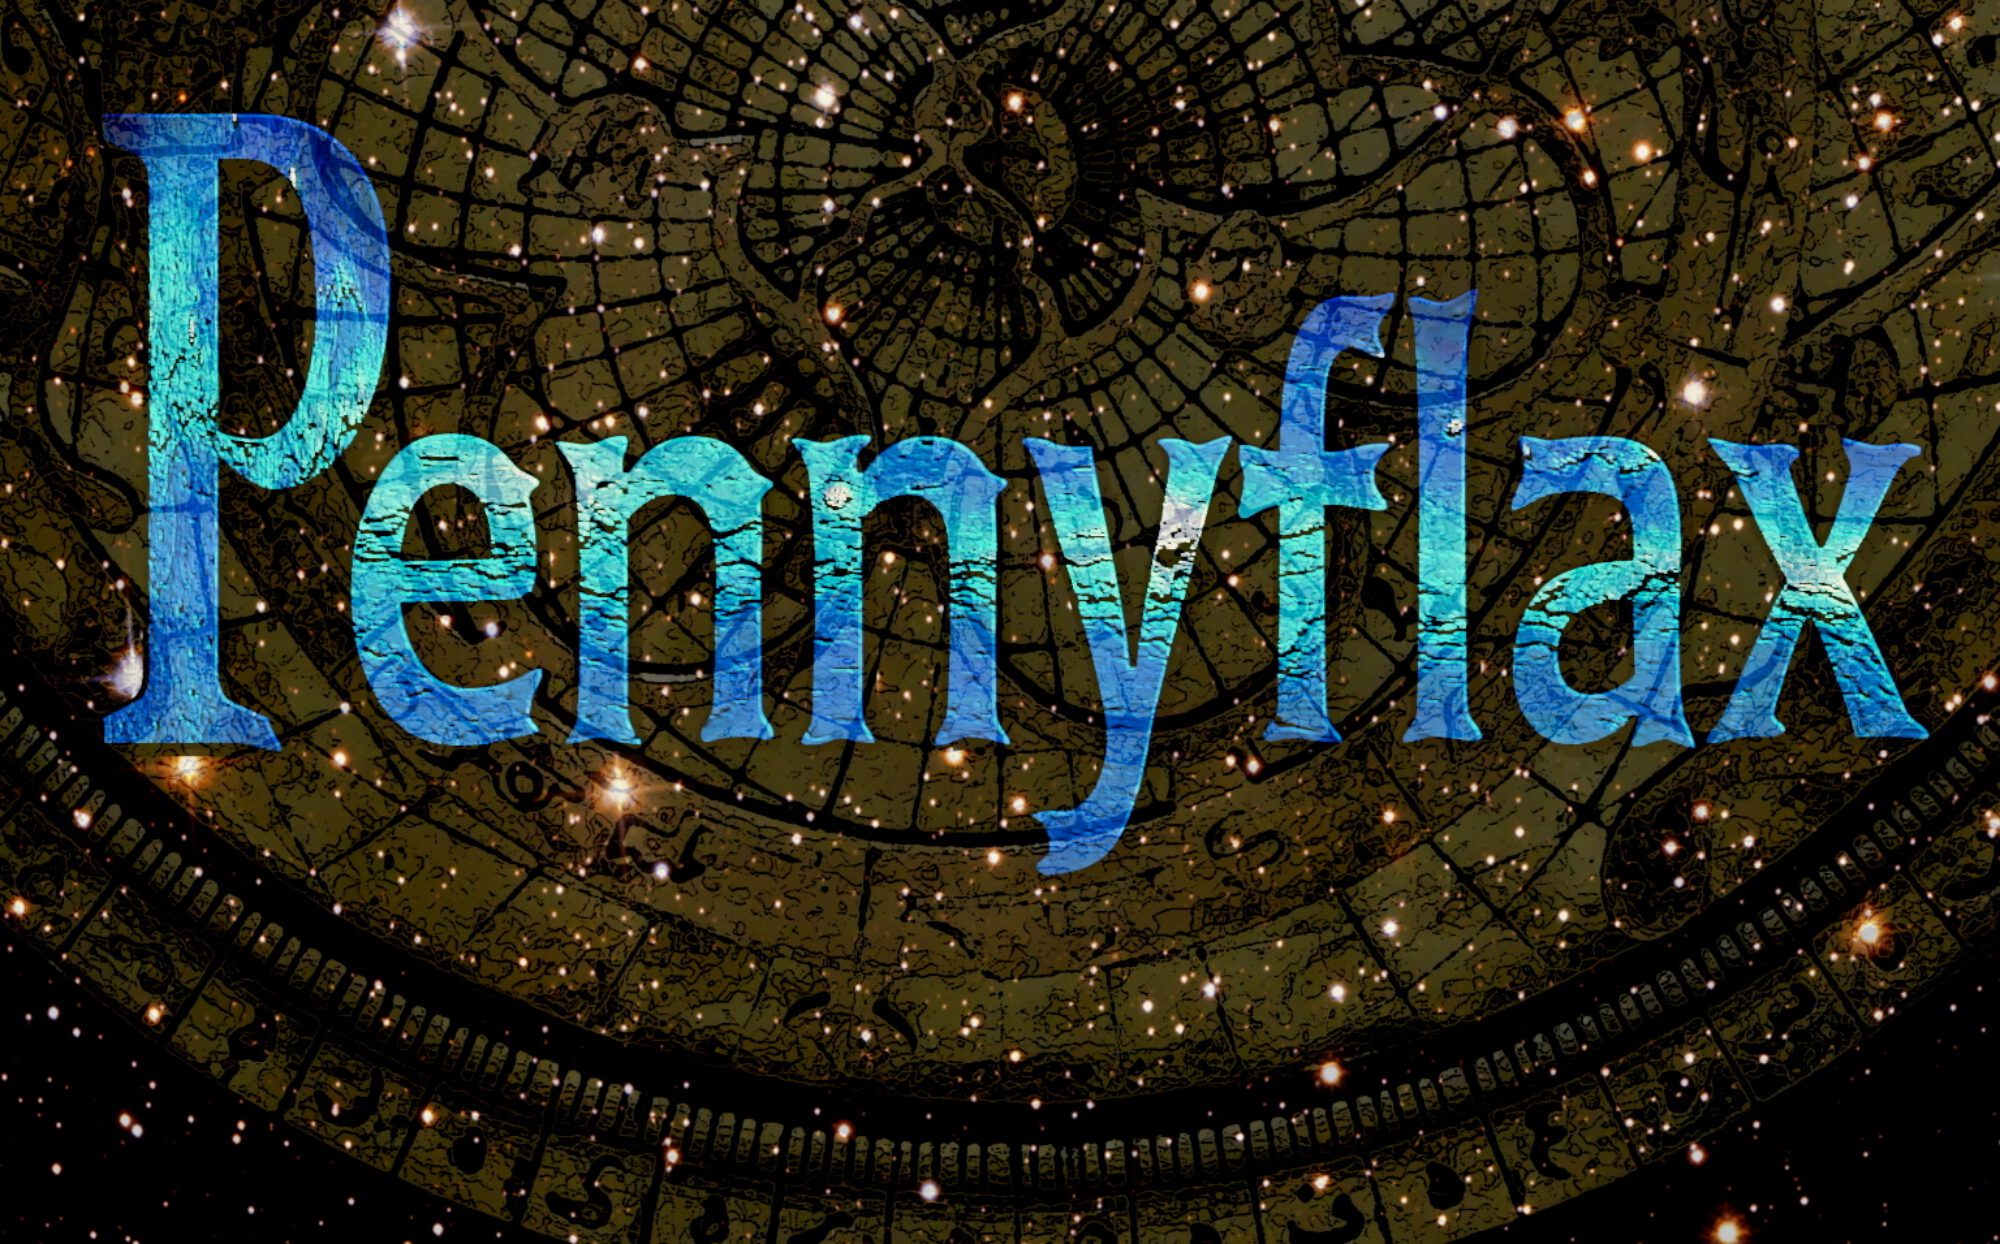 PENNYFLAX